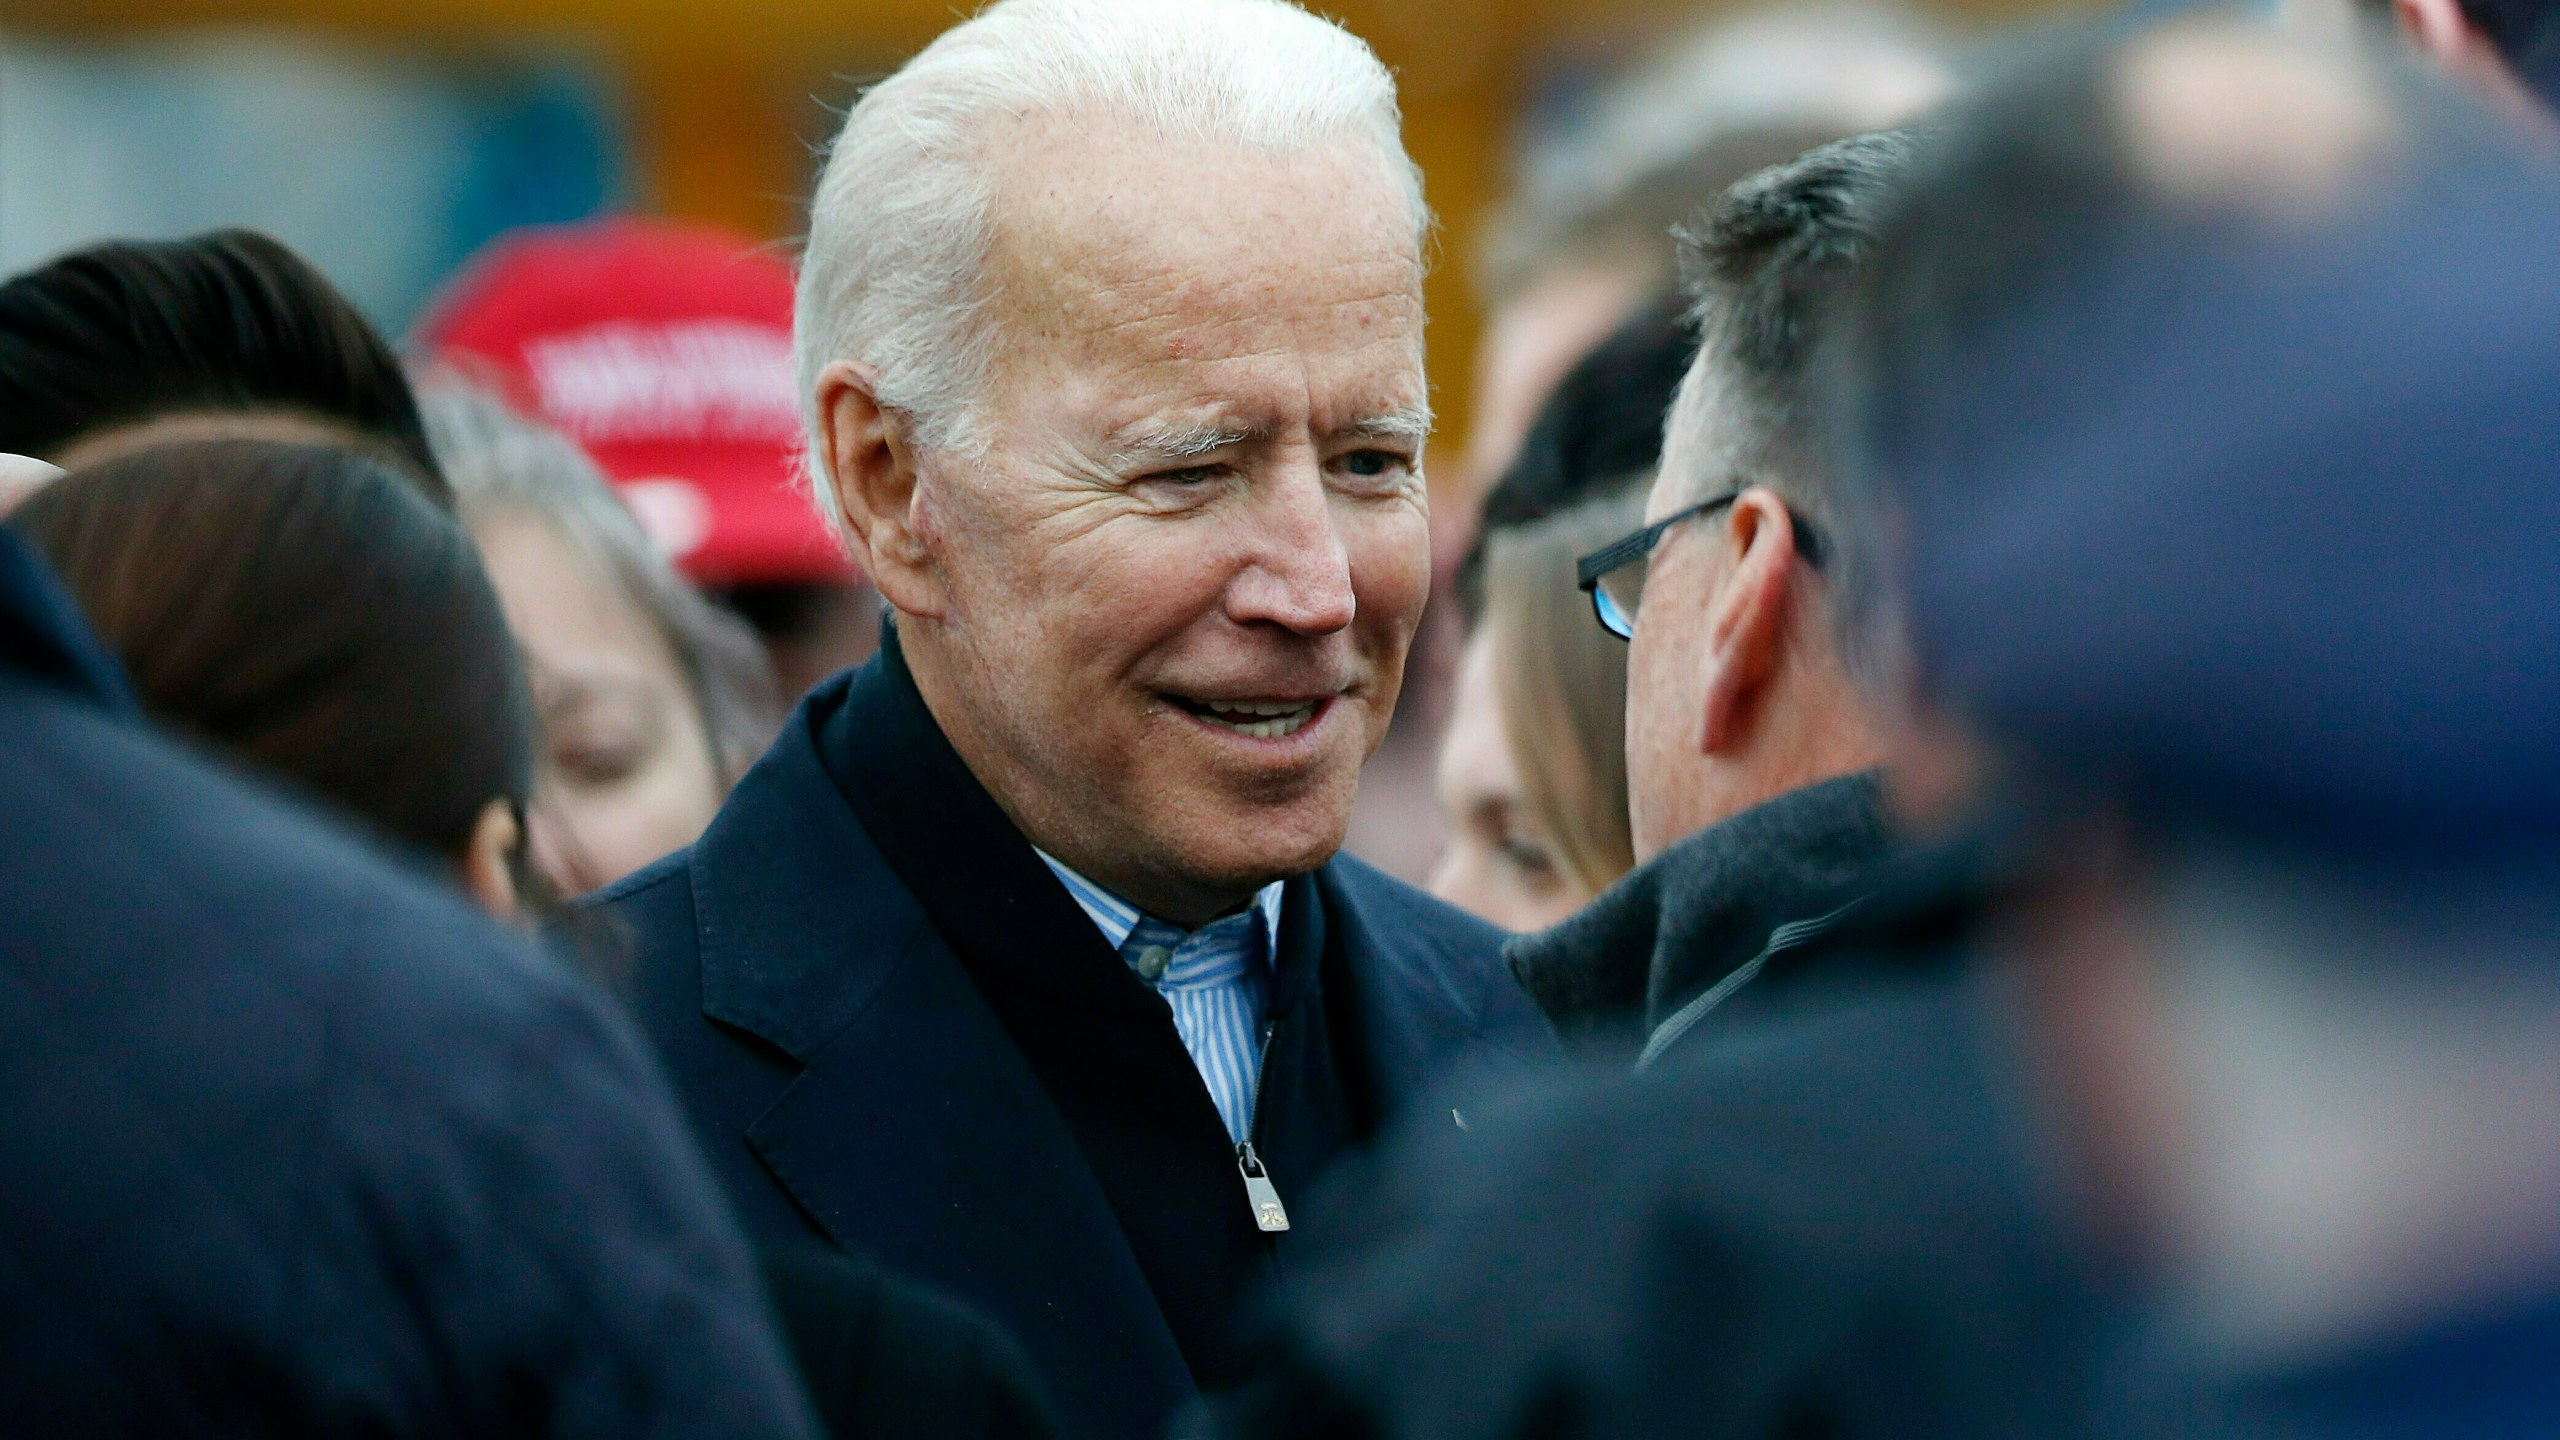 Election_2020_Joe_Biden_59122-159532.jpg92263515